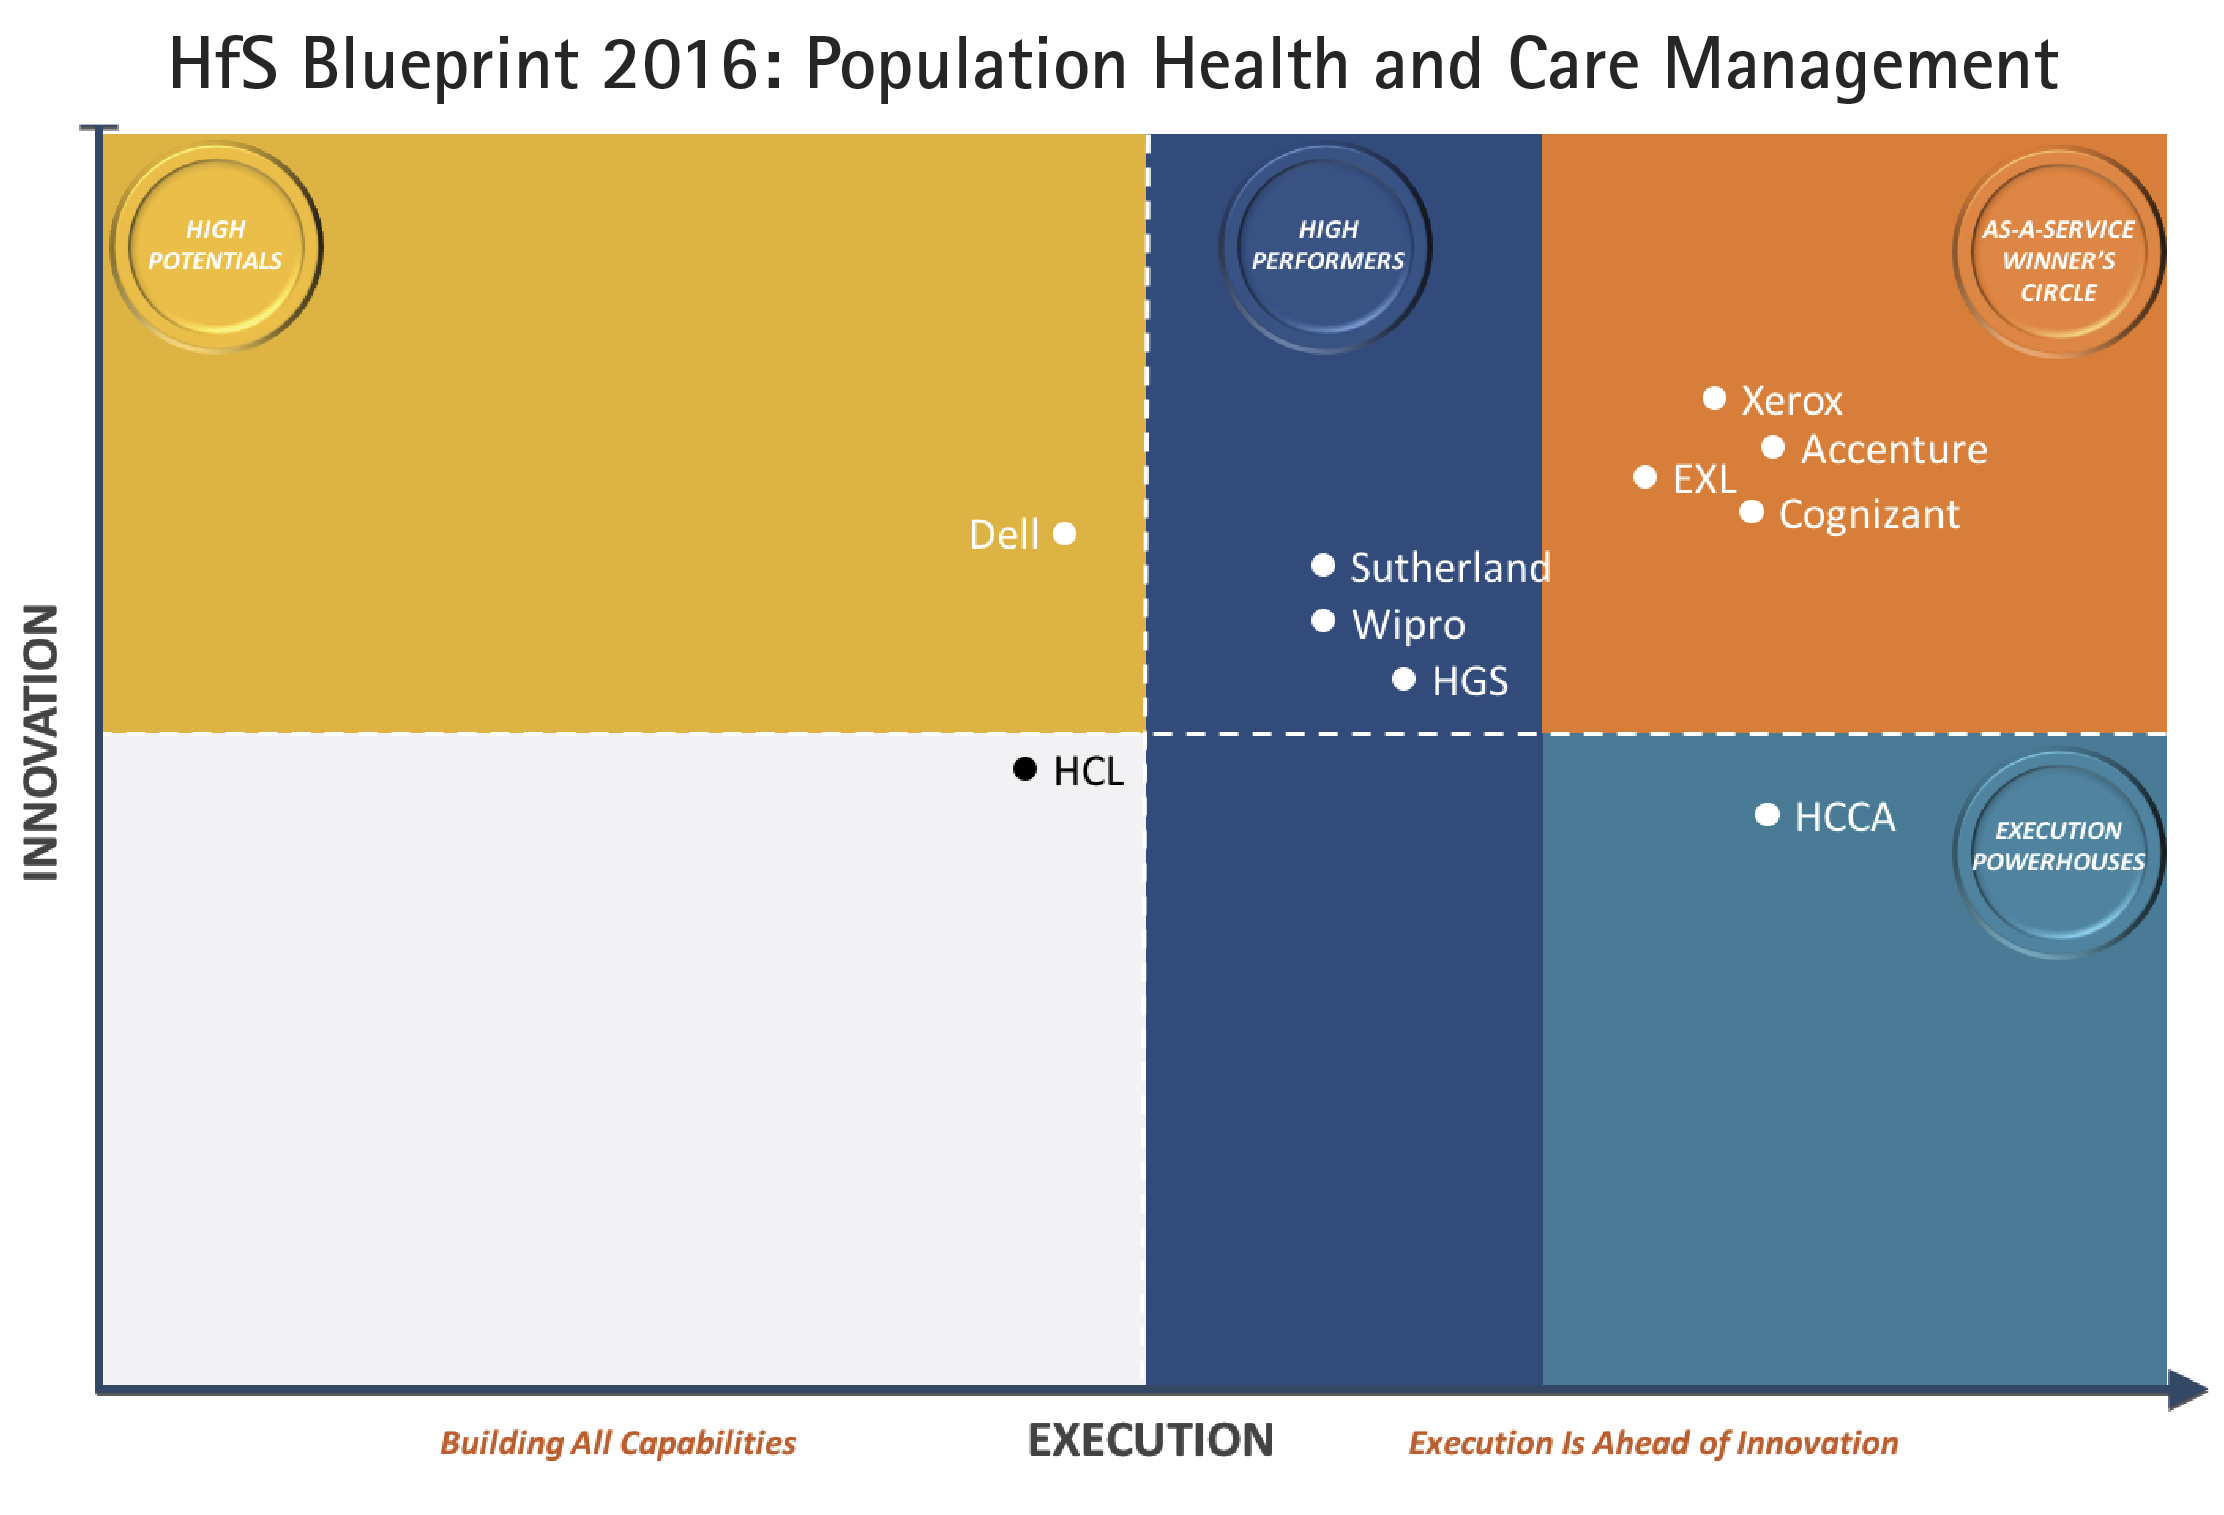 Accenture again named to winners circle by hfs research for accenture again named to winners circle by hfs research for excellence in population health and care management business wire malvernweather Choice Image